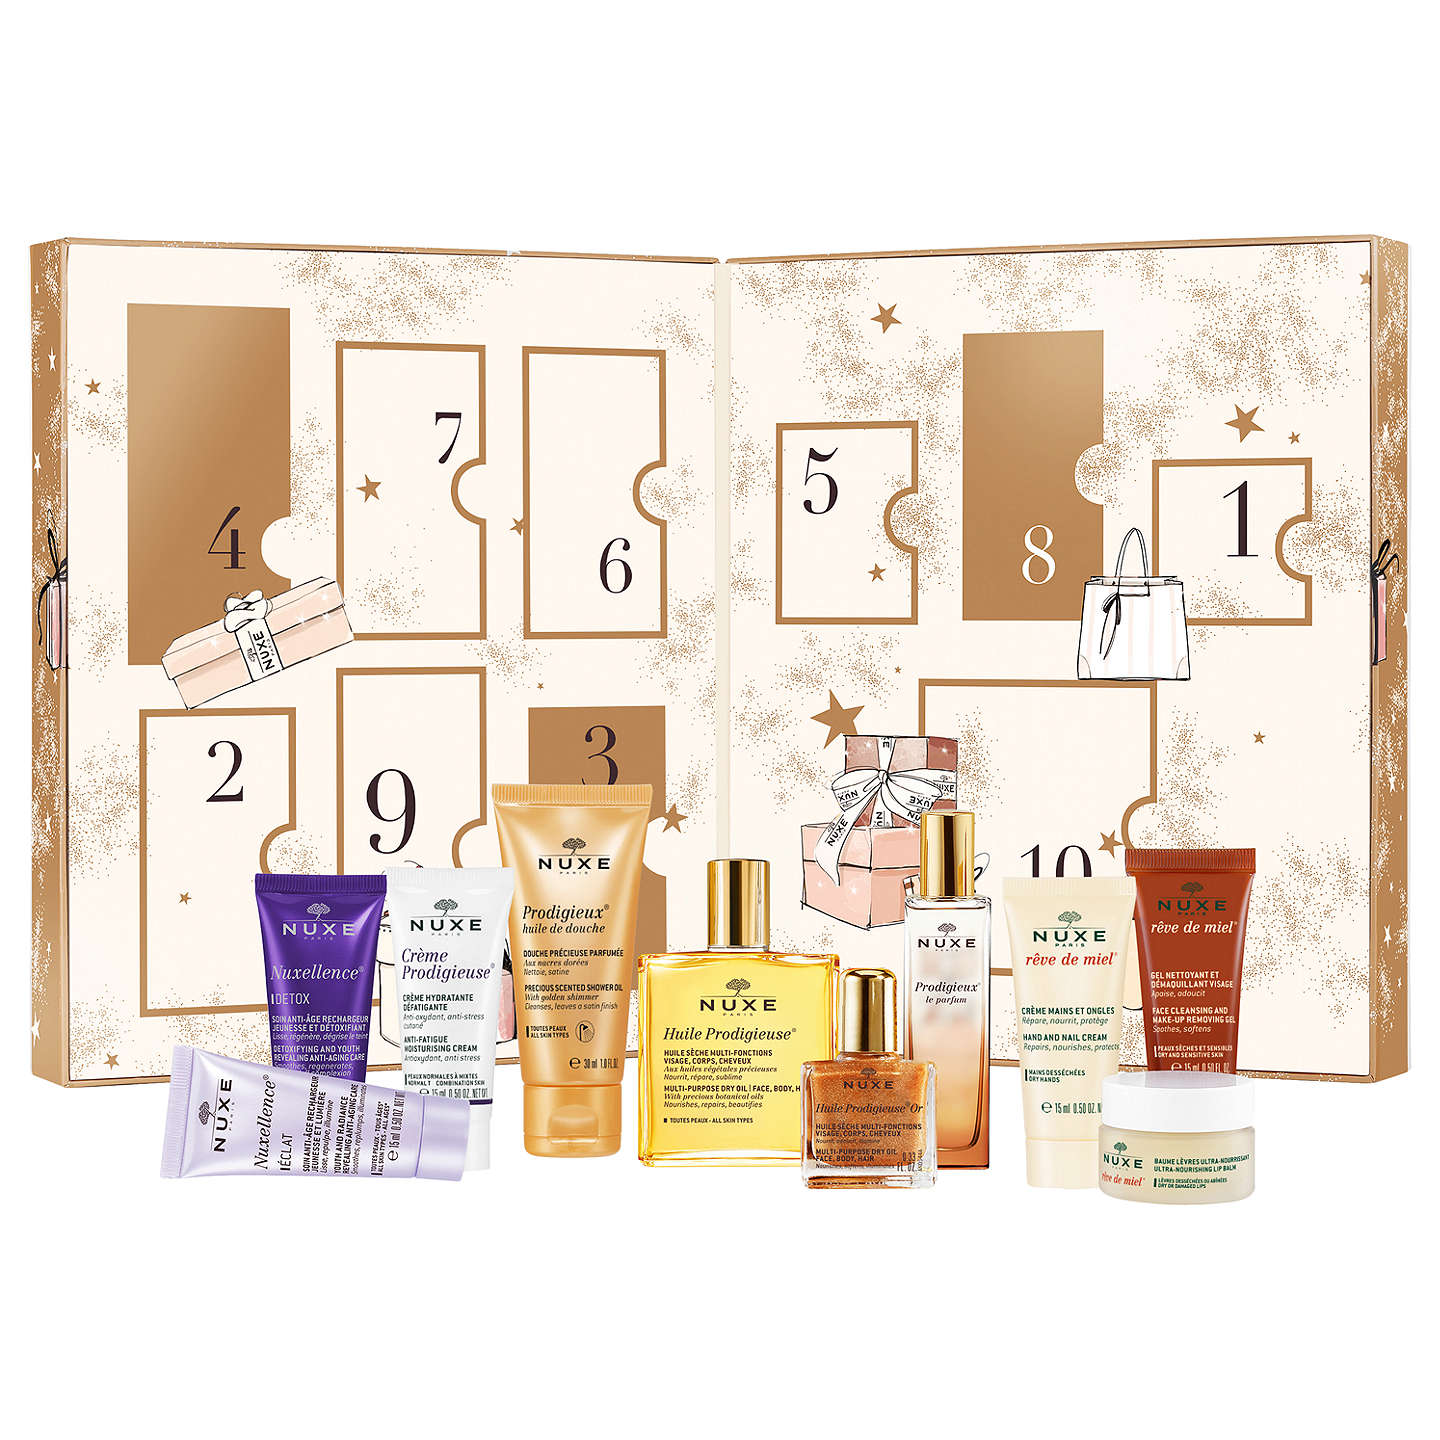 BuyNUXE Beauty Treasures Advent Calendar Online at johnlewis.com